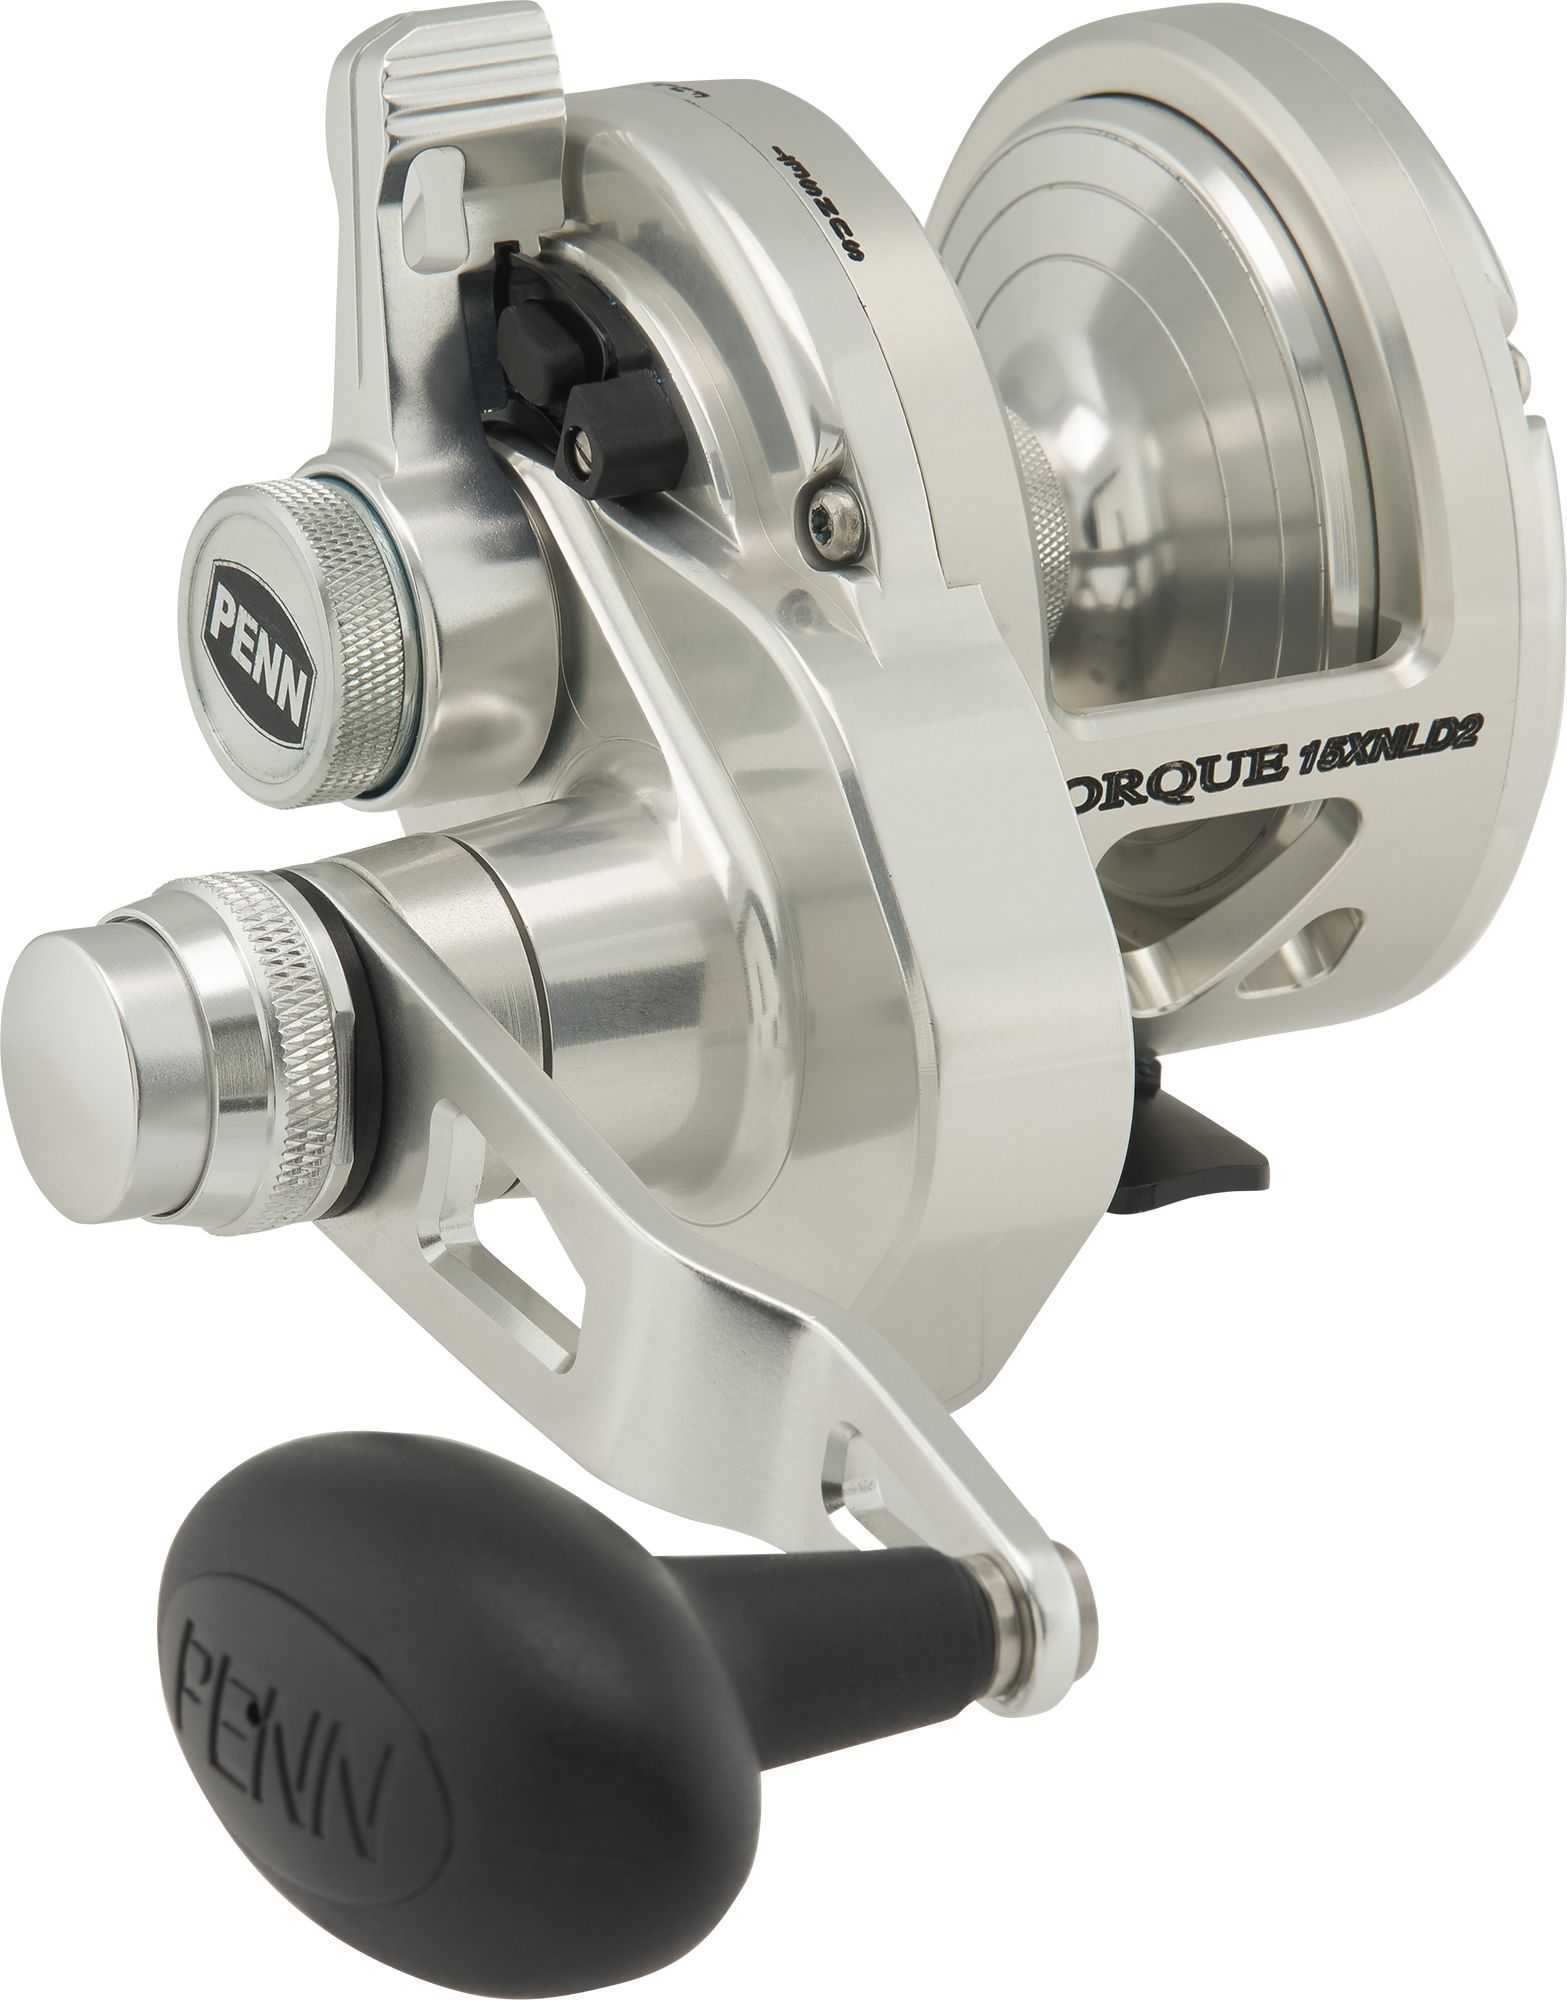 PENN Torque 2-Speed Lever Drag Conventional Reels, Size: 30 thumbnail